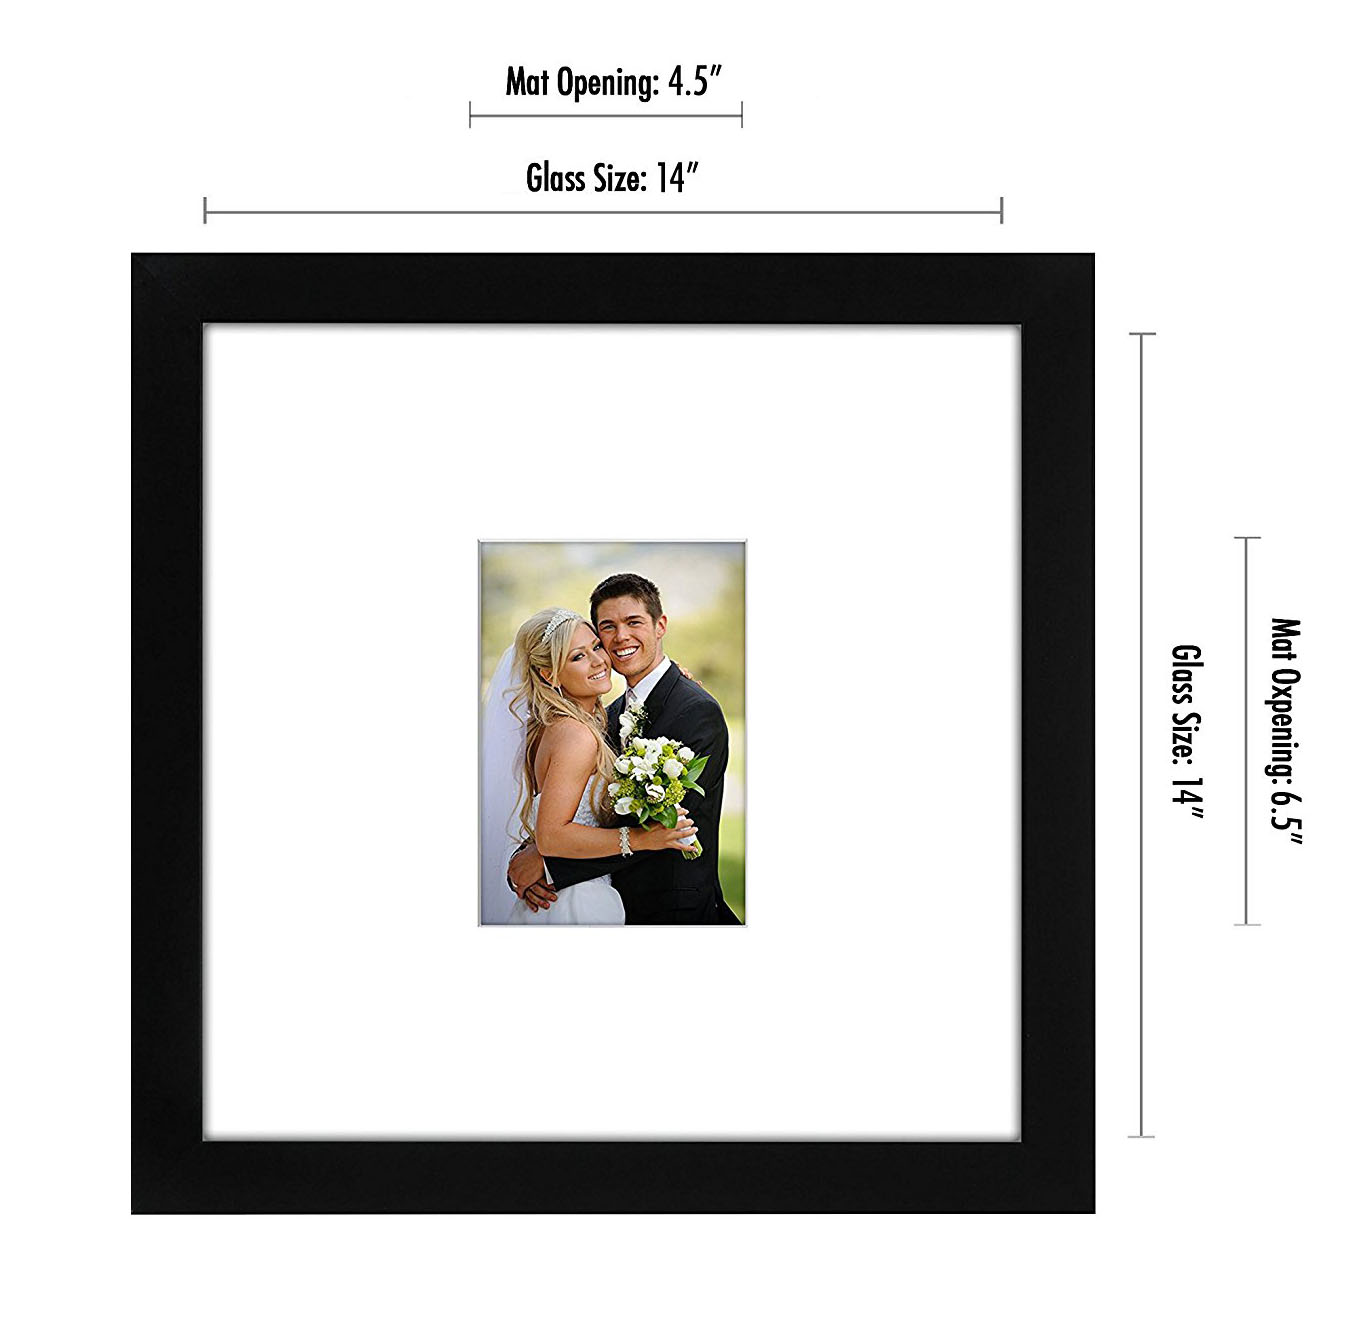 miniature 3 - 14x14 Wedding Signature Picture Frame Display Pictures 5x7 or 14x14 Without Mat